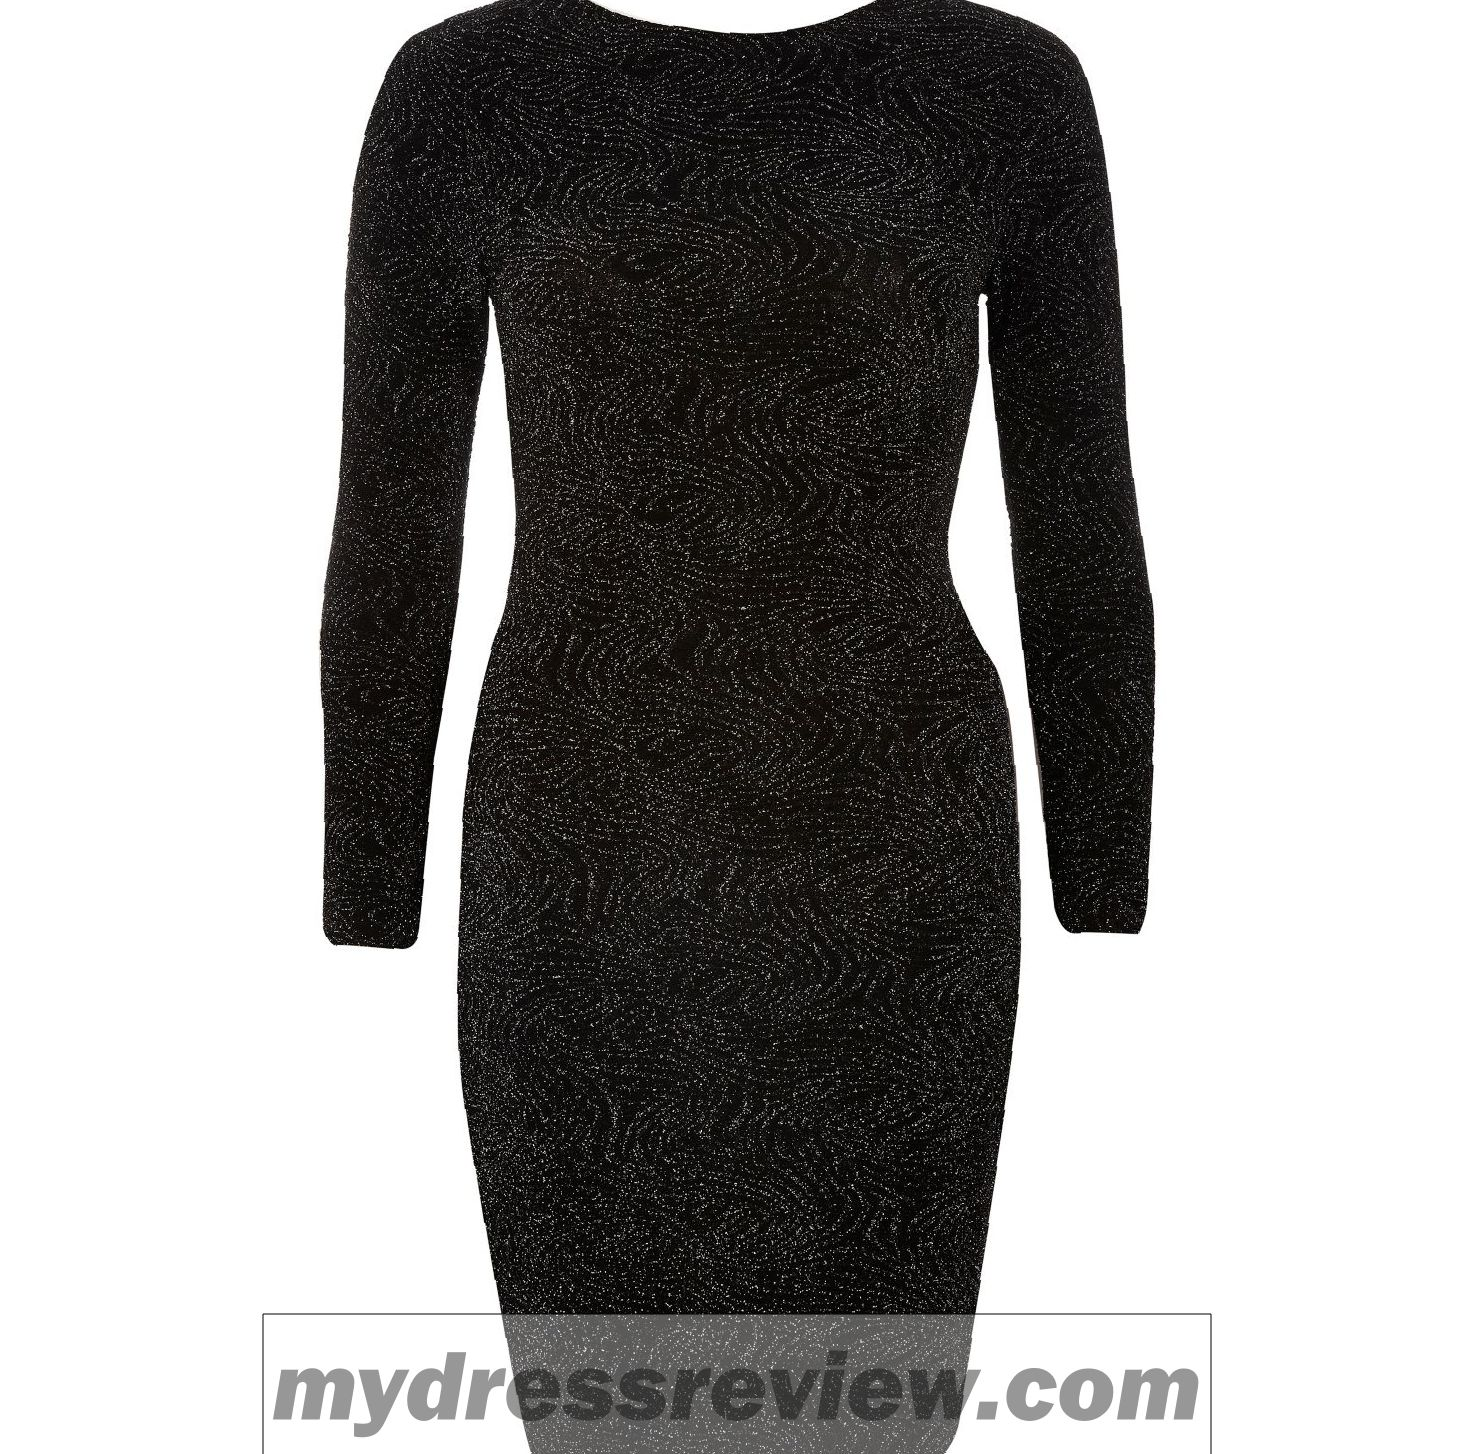 River Island Bodycon Dress Sale : Fashion Show Collection